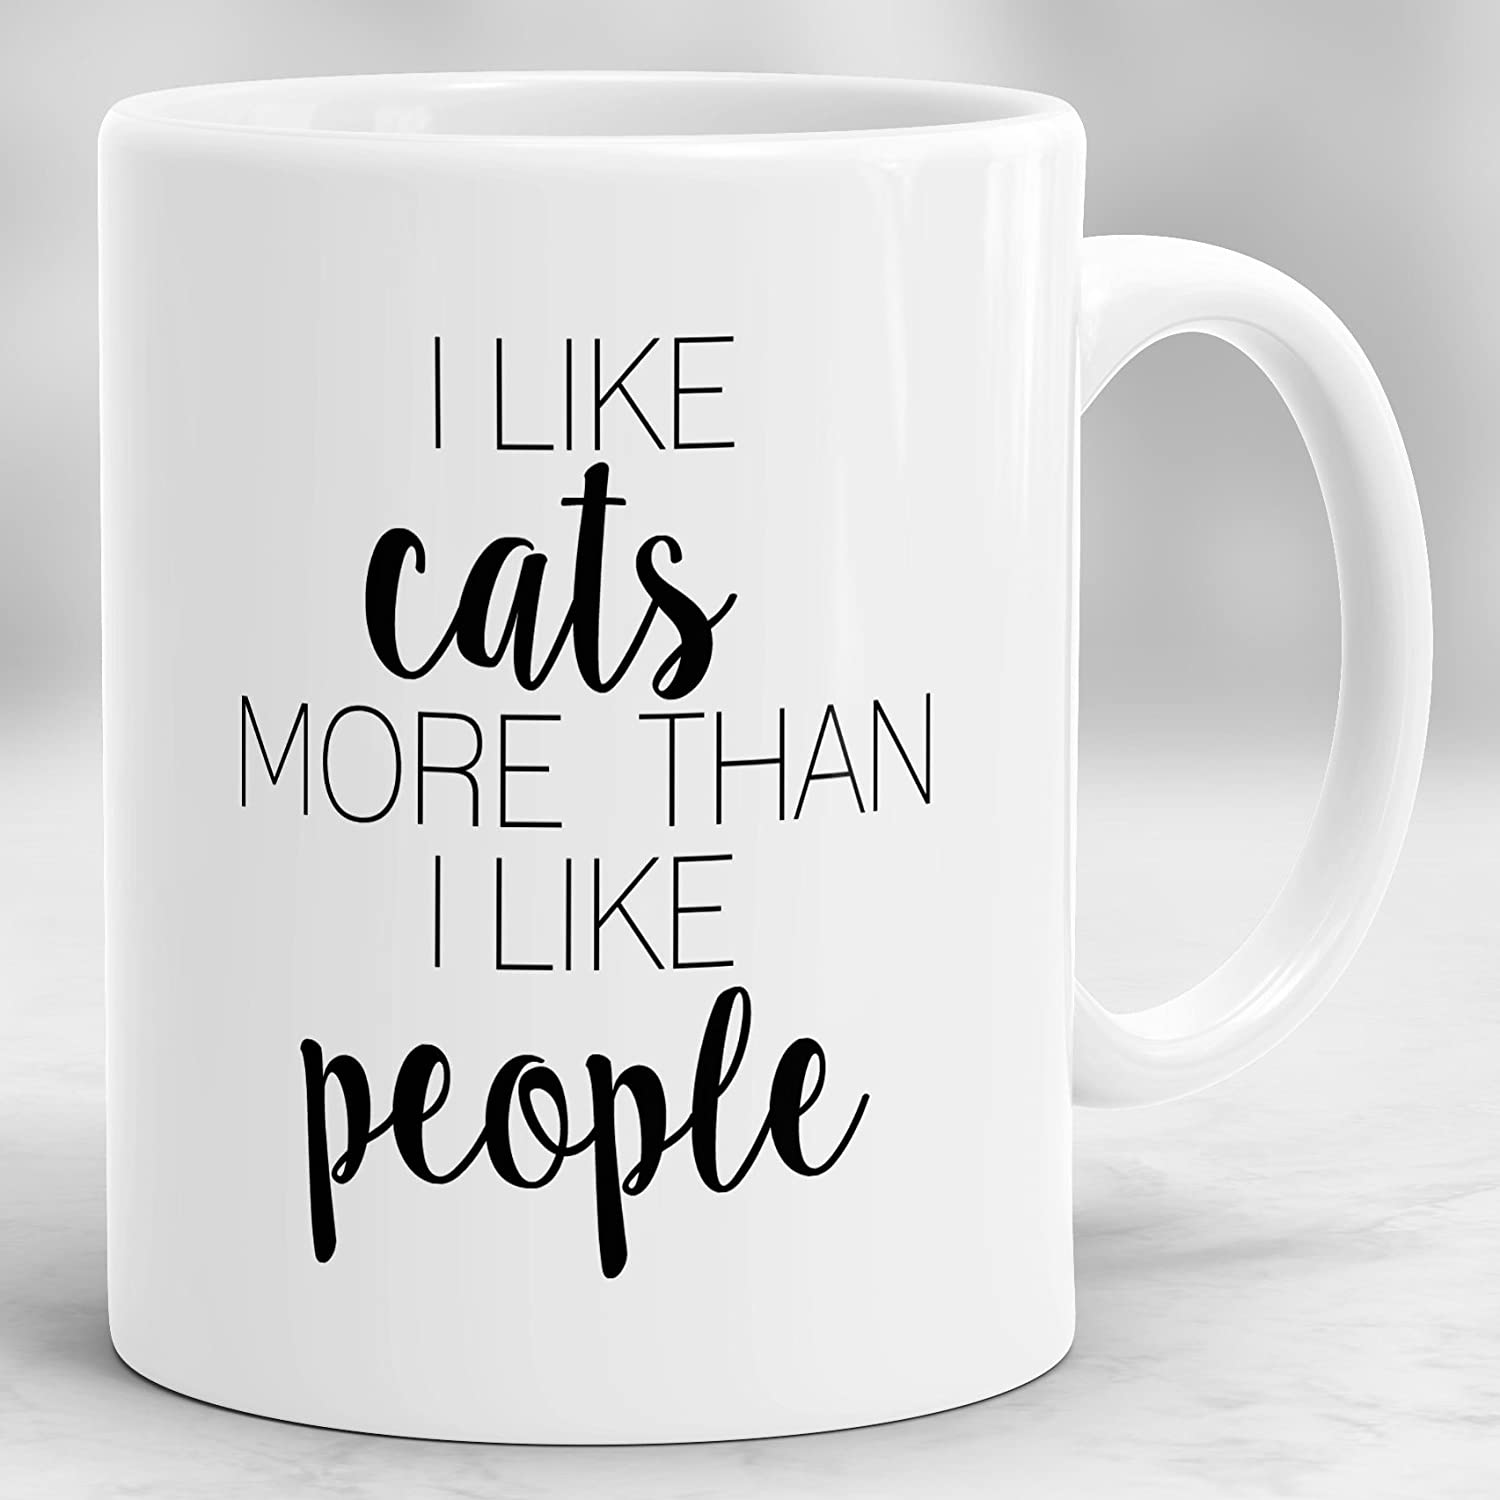 I Like Cats More Than People Mug Cat Mug Meow Mug P167 Cat Lover Gift Pet Gifts Kitty Gift Cat Cup Animal Lovers Gift